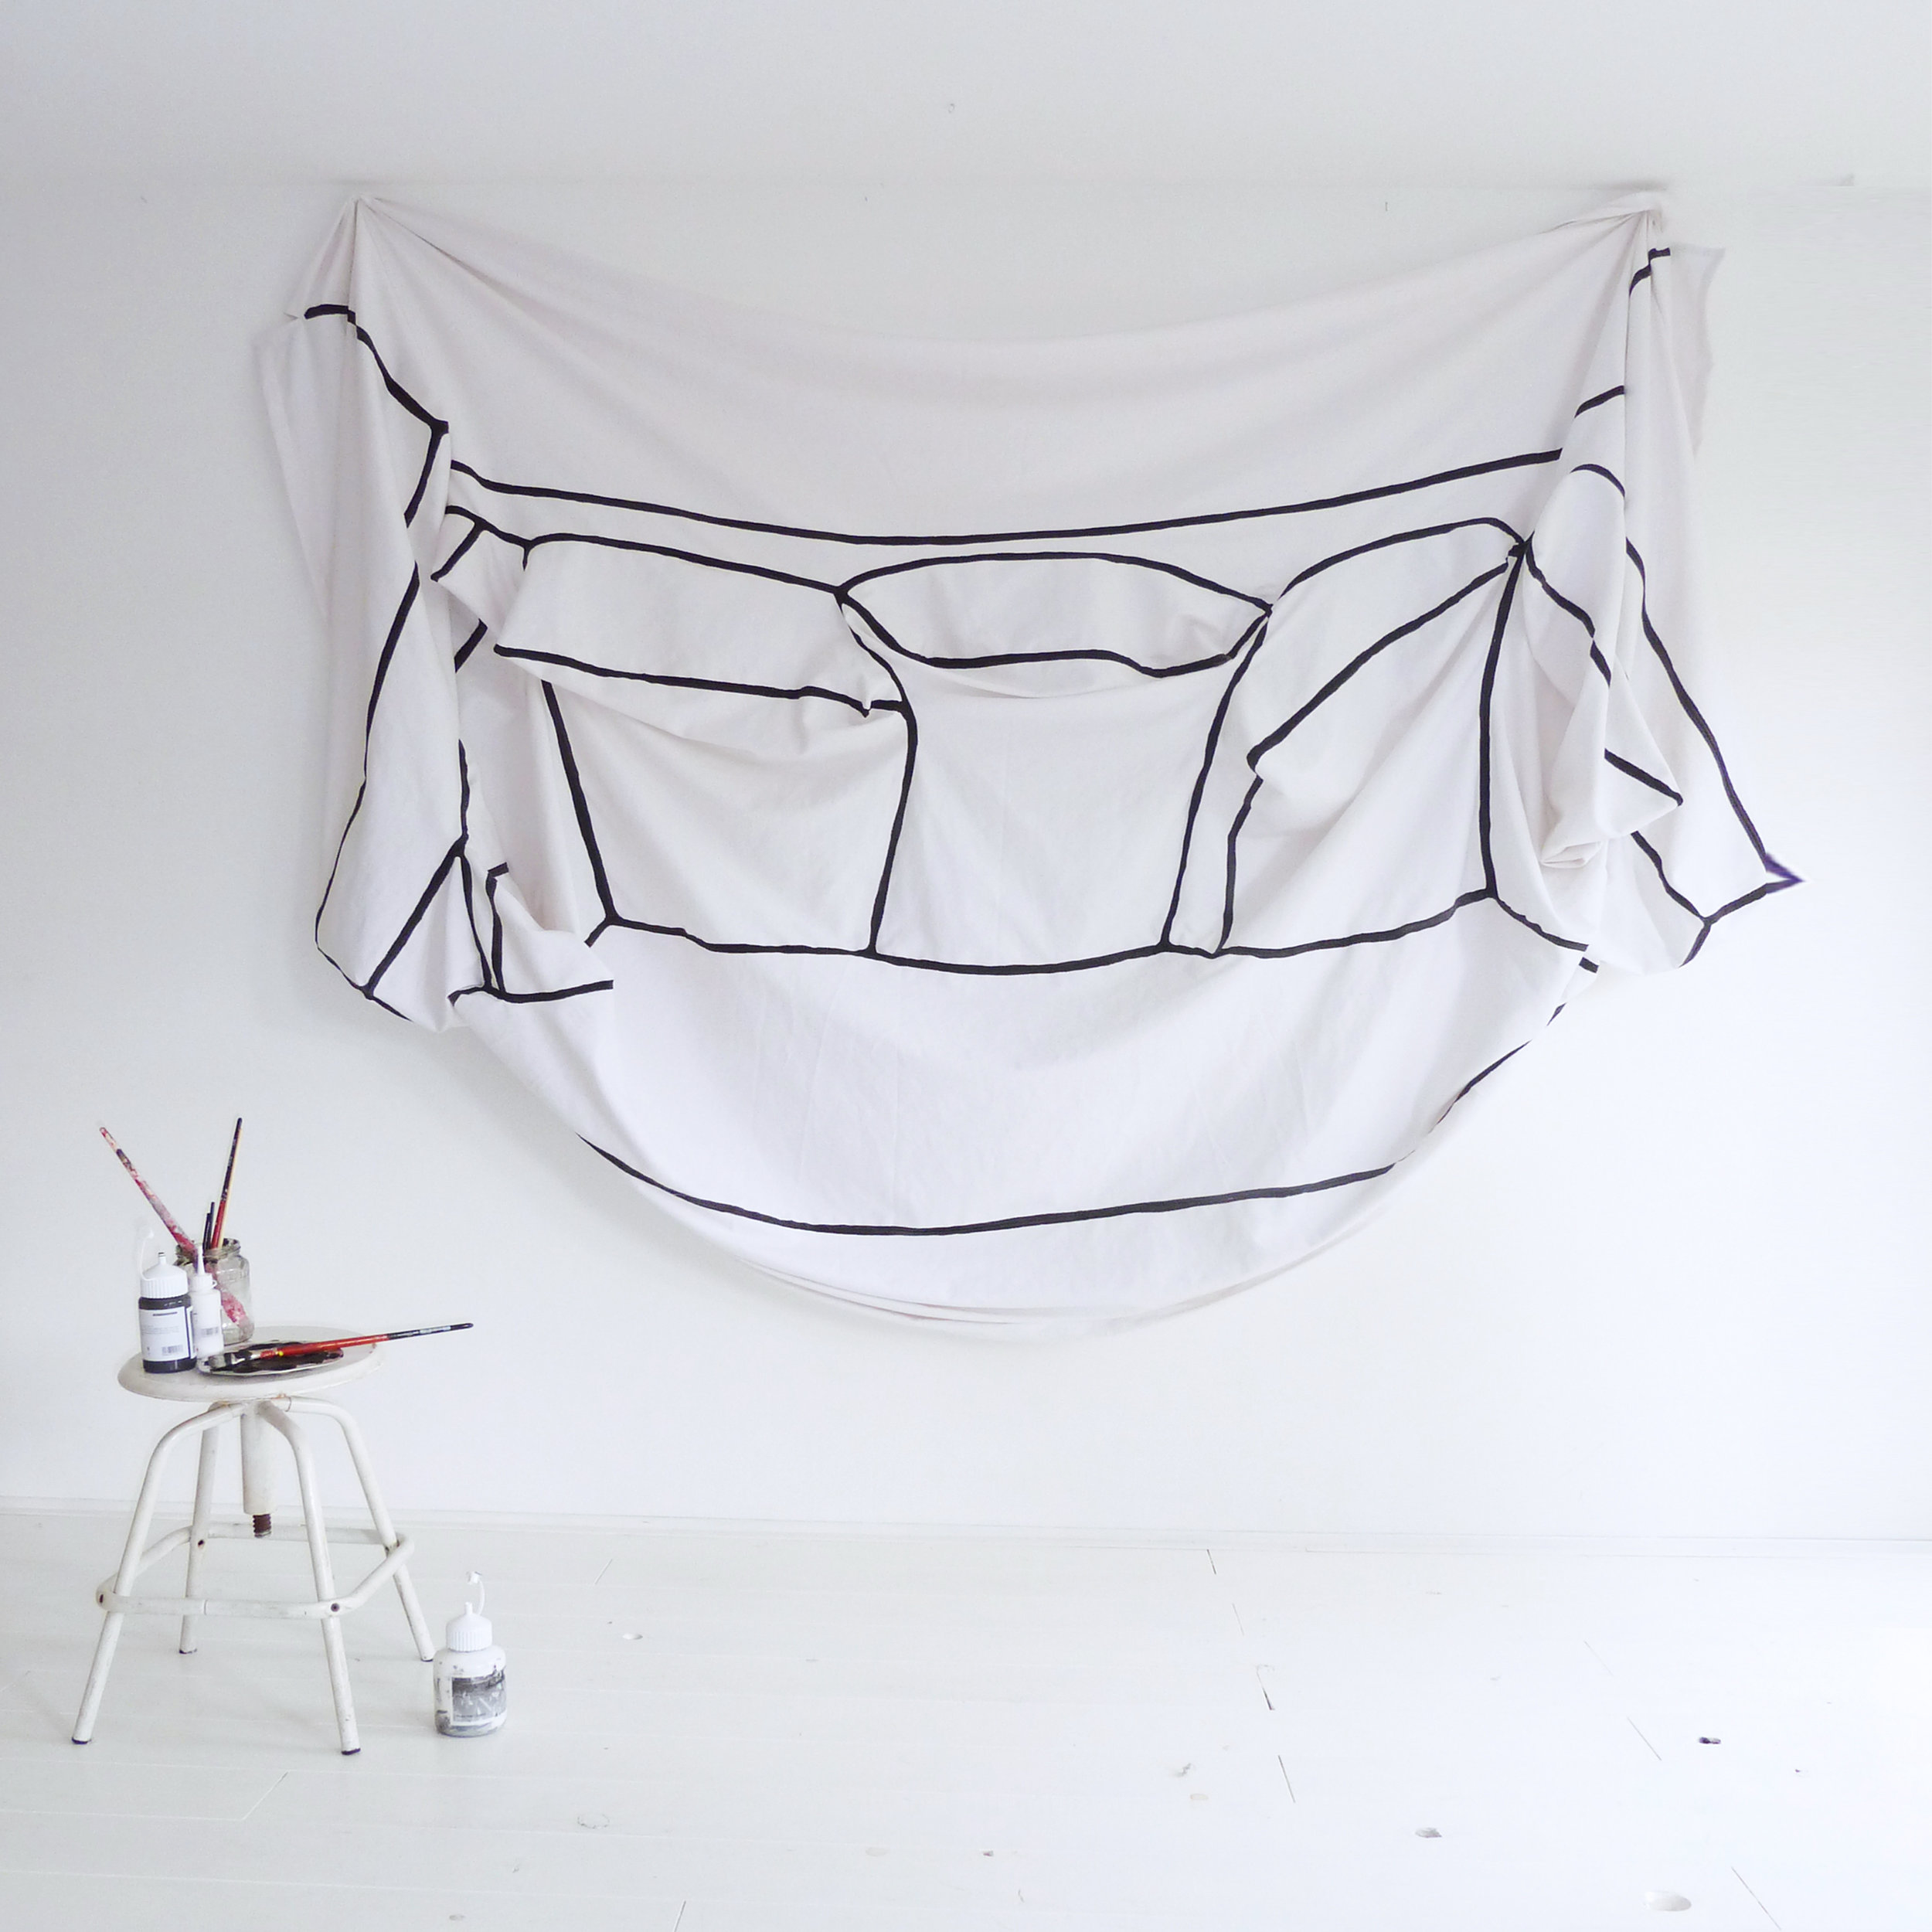 7.couch on canvas - hanging.jpg